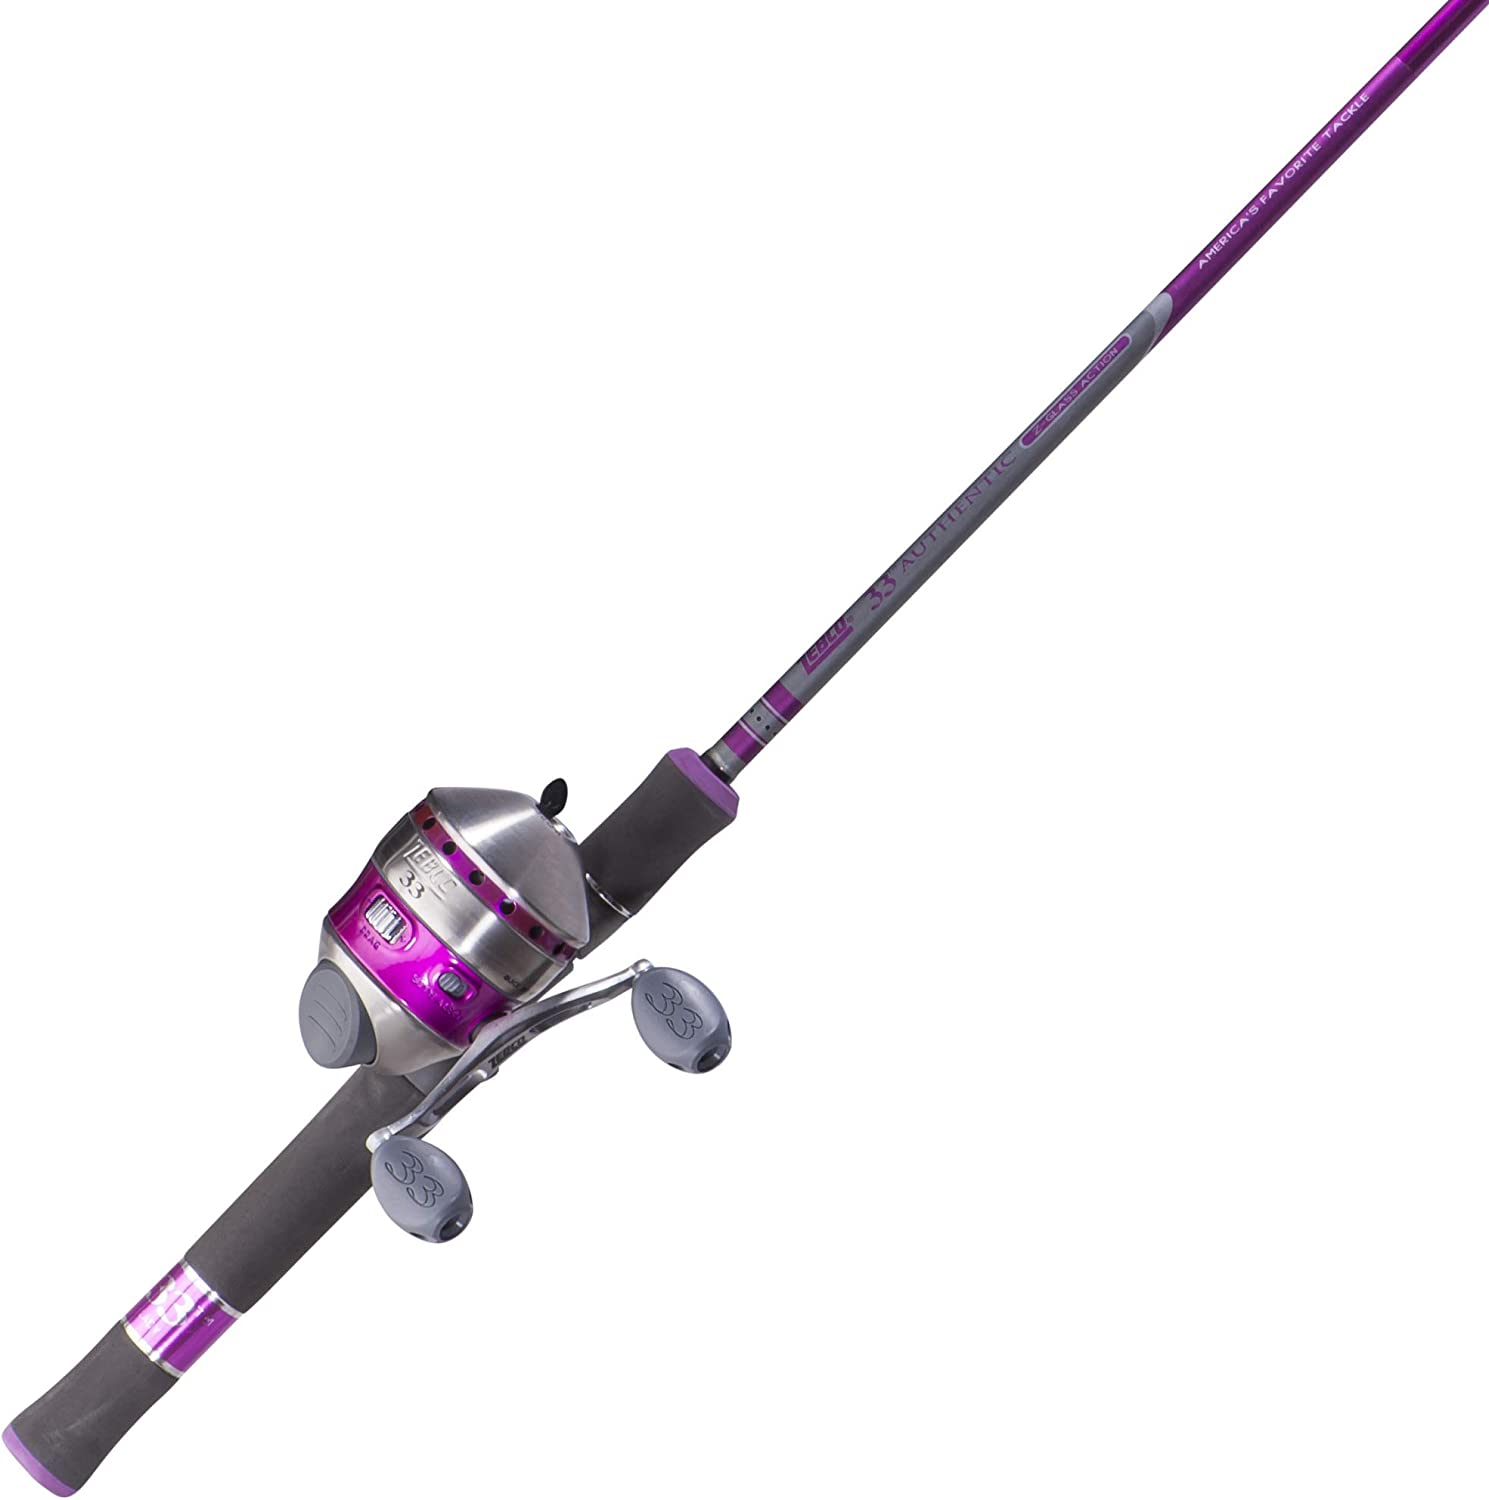 Best Fishing Rod For Bass